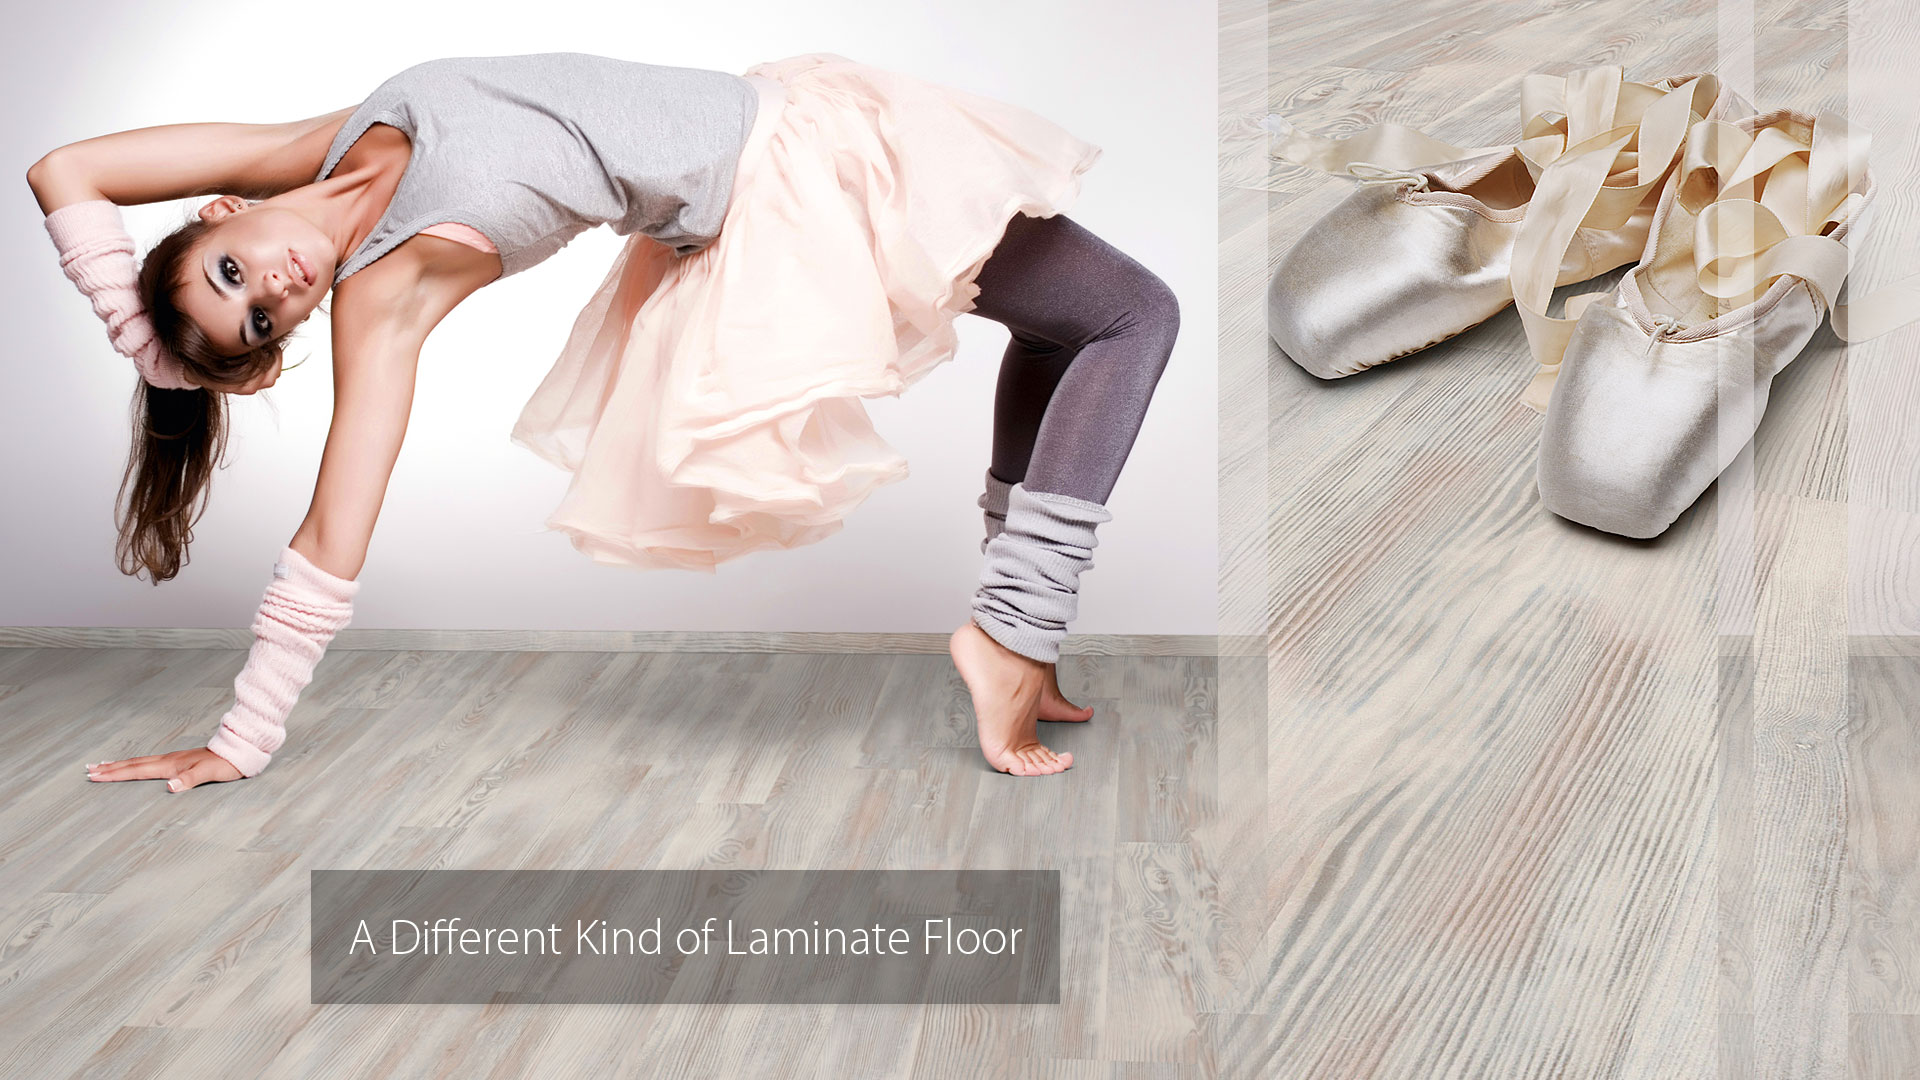 A Different Kind of Laminate Floor